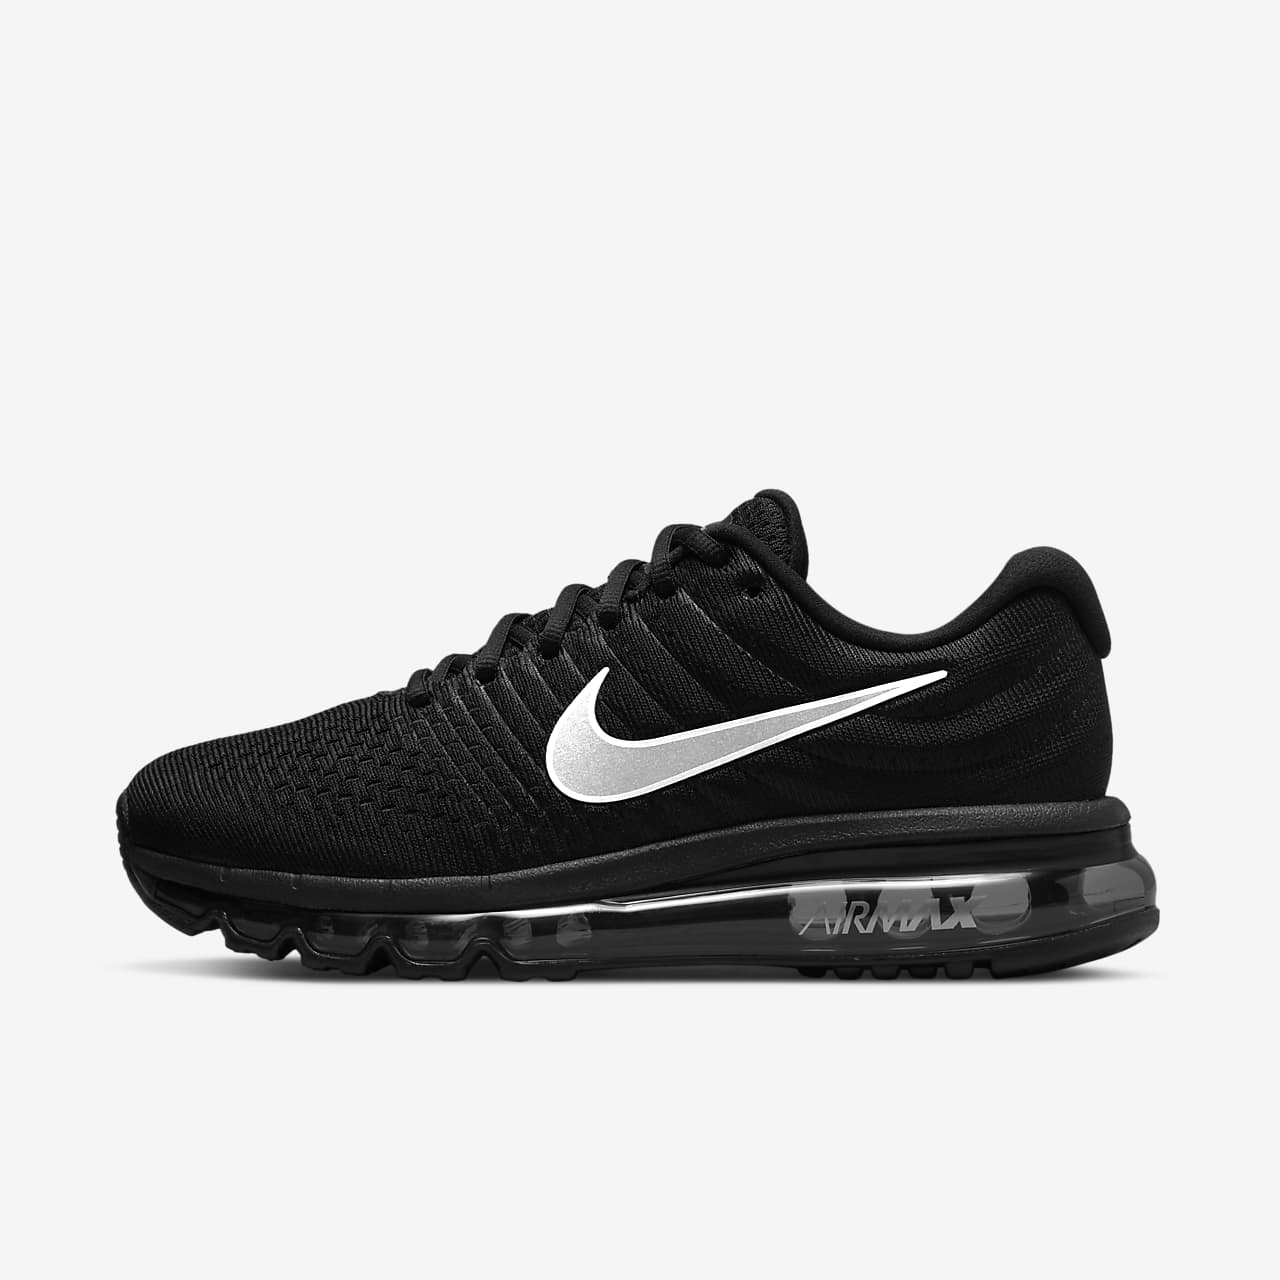 8d2878dc90b Nike Air Max 2017 Women s Shoe. Nike.com GB